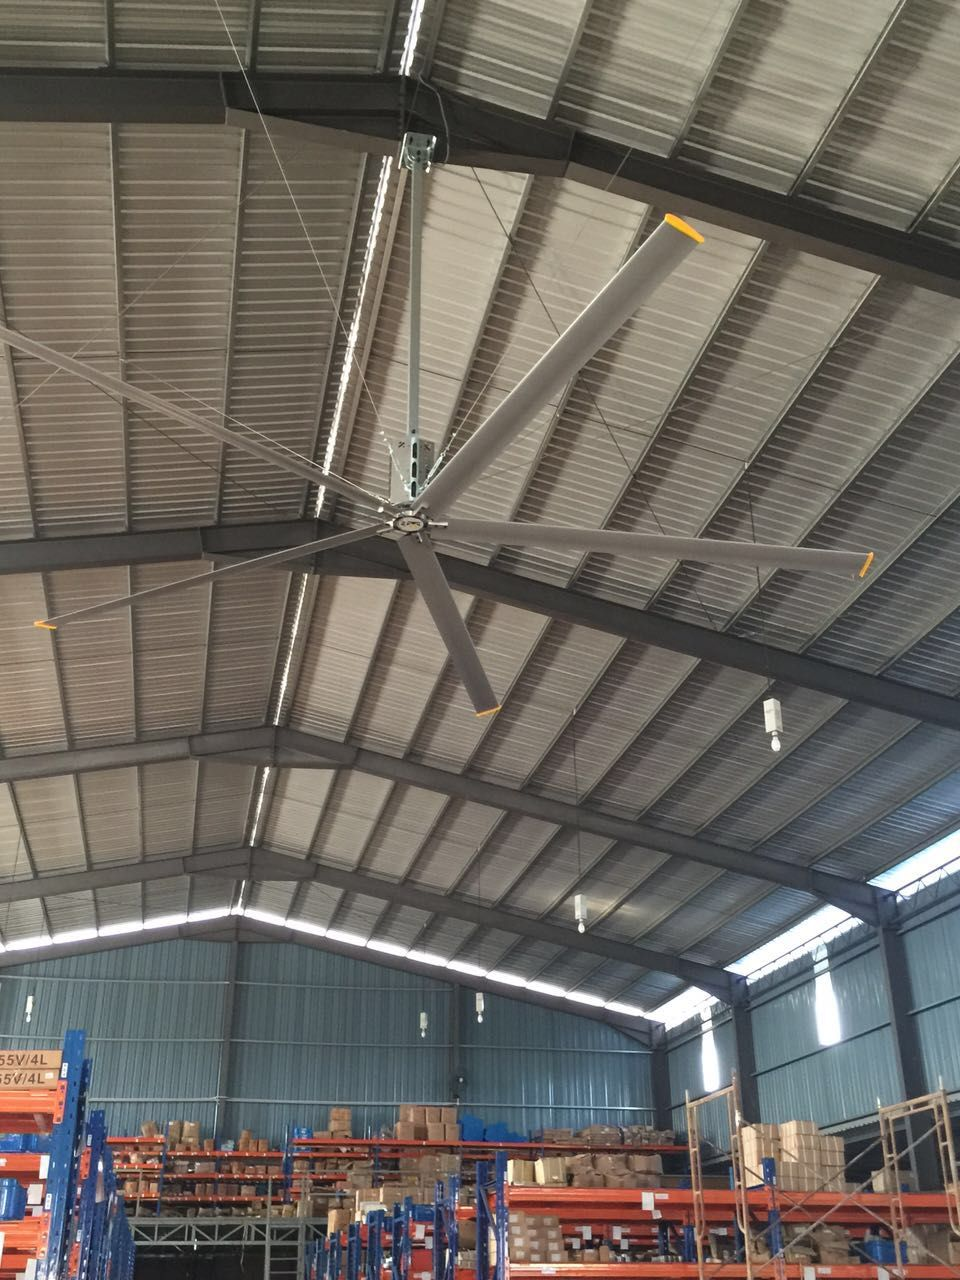 High Volume Low Speed Fans Improve Ventilation And Indoor Air Quality Our Industrial Fans Are Designed To Circula Indoor Air Quality Industrial Fan Indoor Air